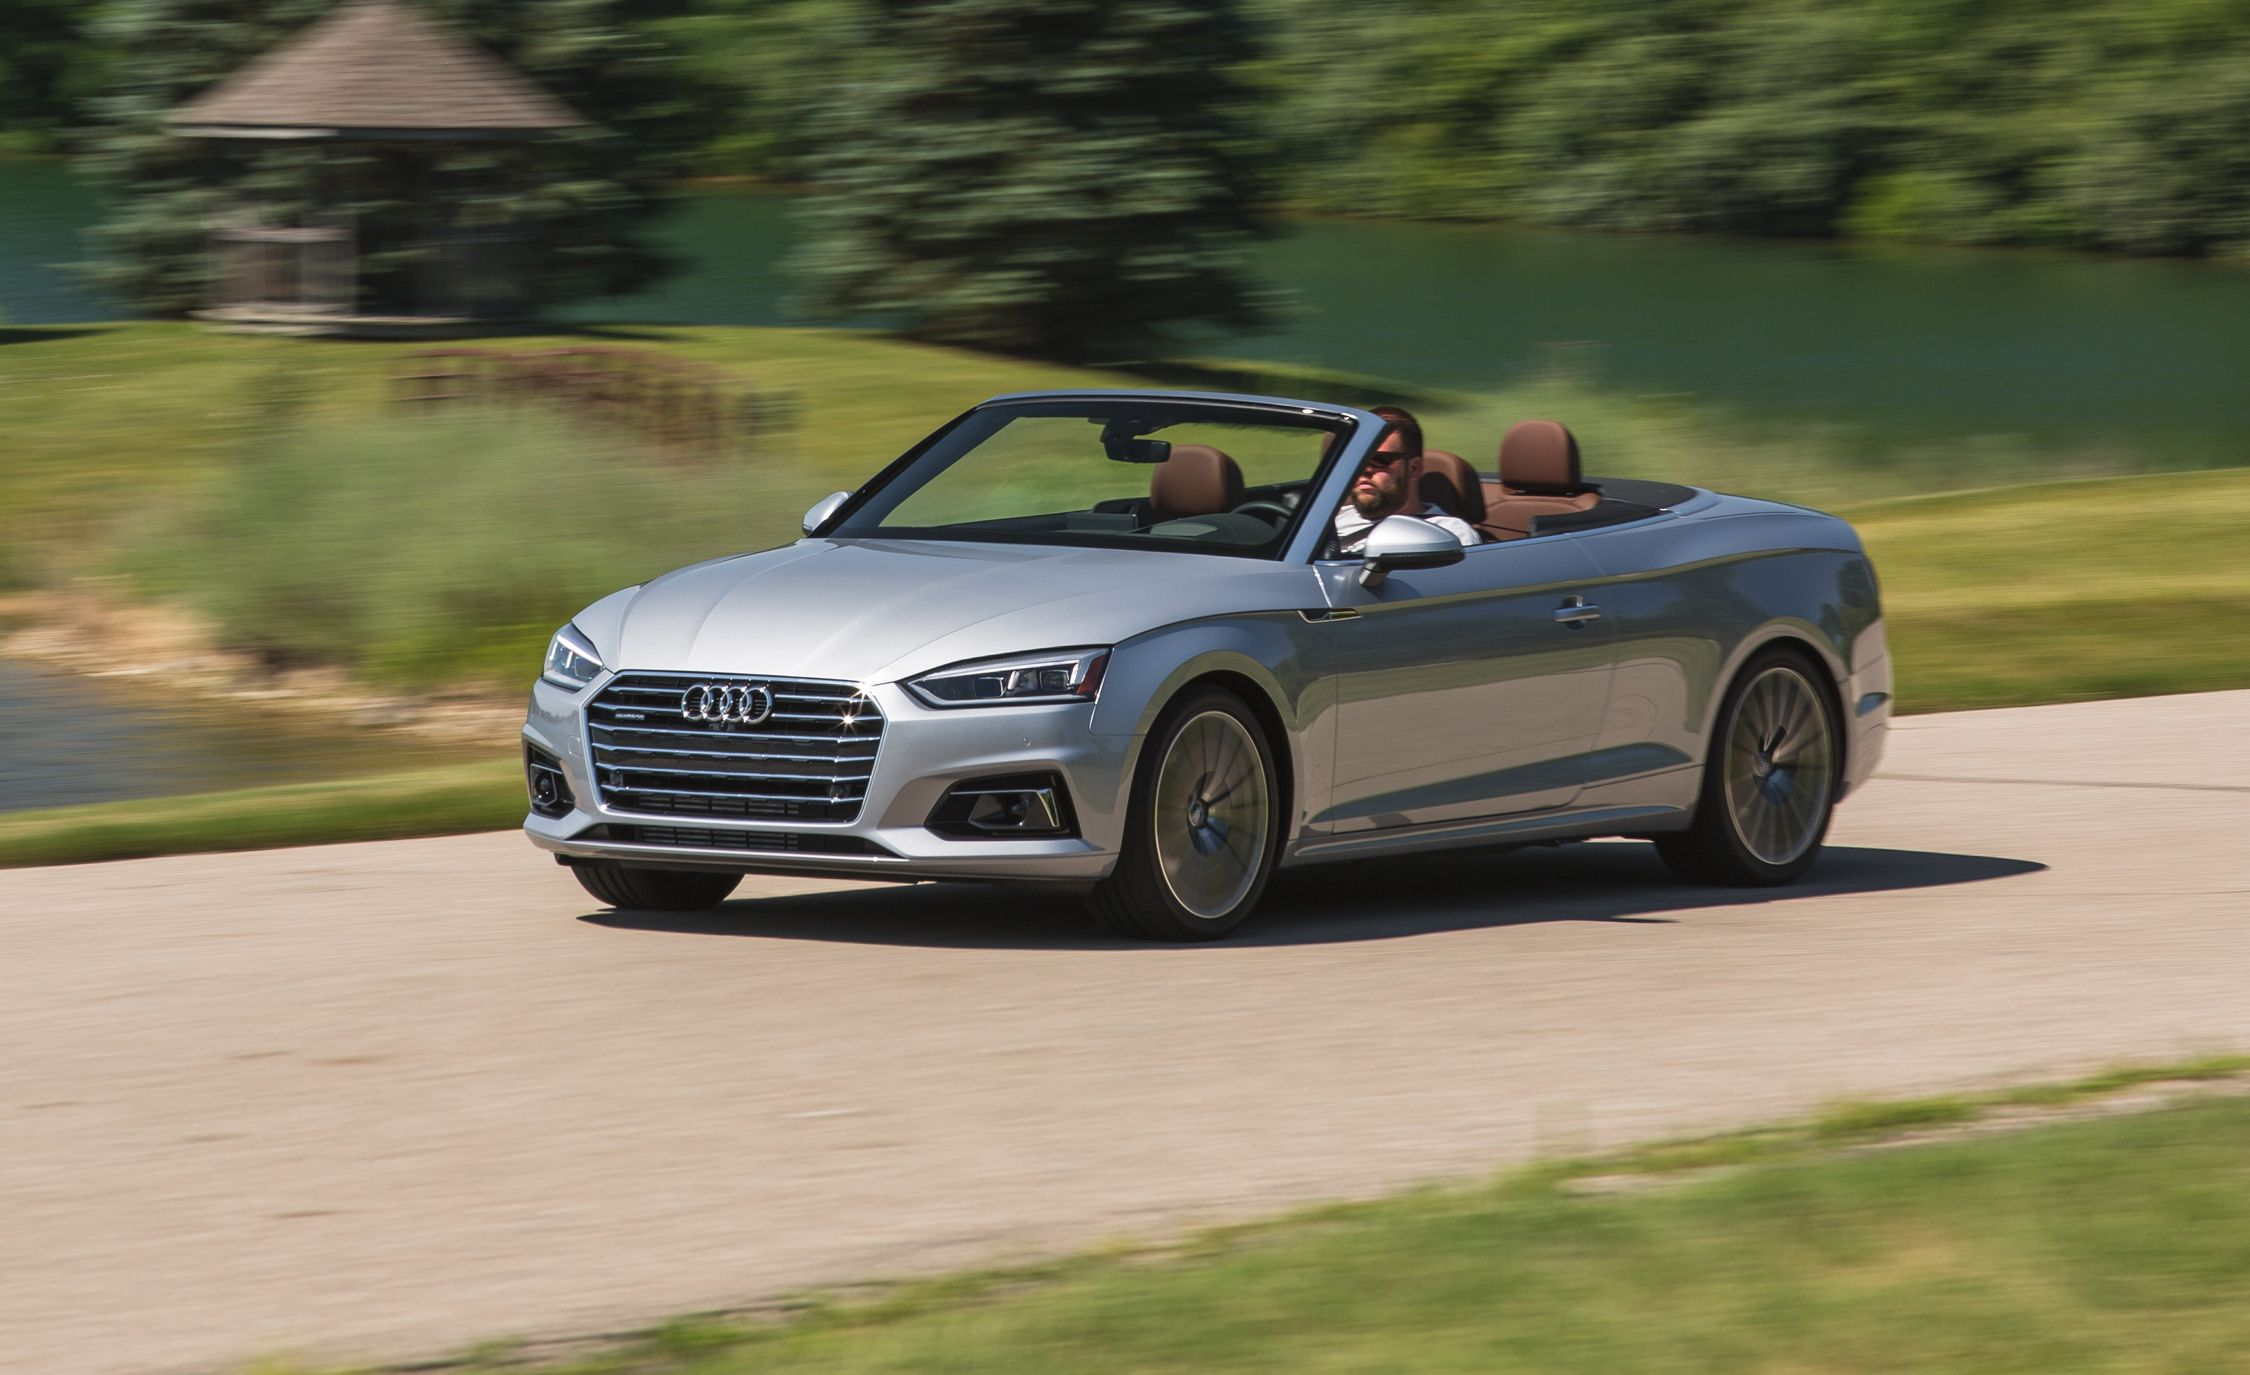 2018 audi a5 cabriolet test review car and driver photo 685708 s original